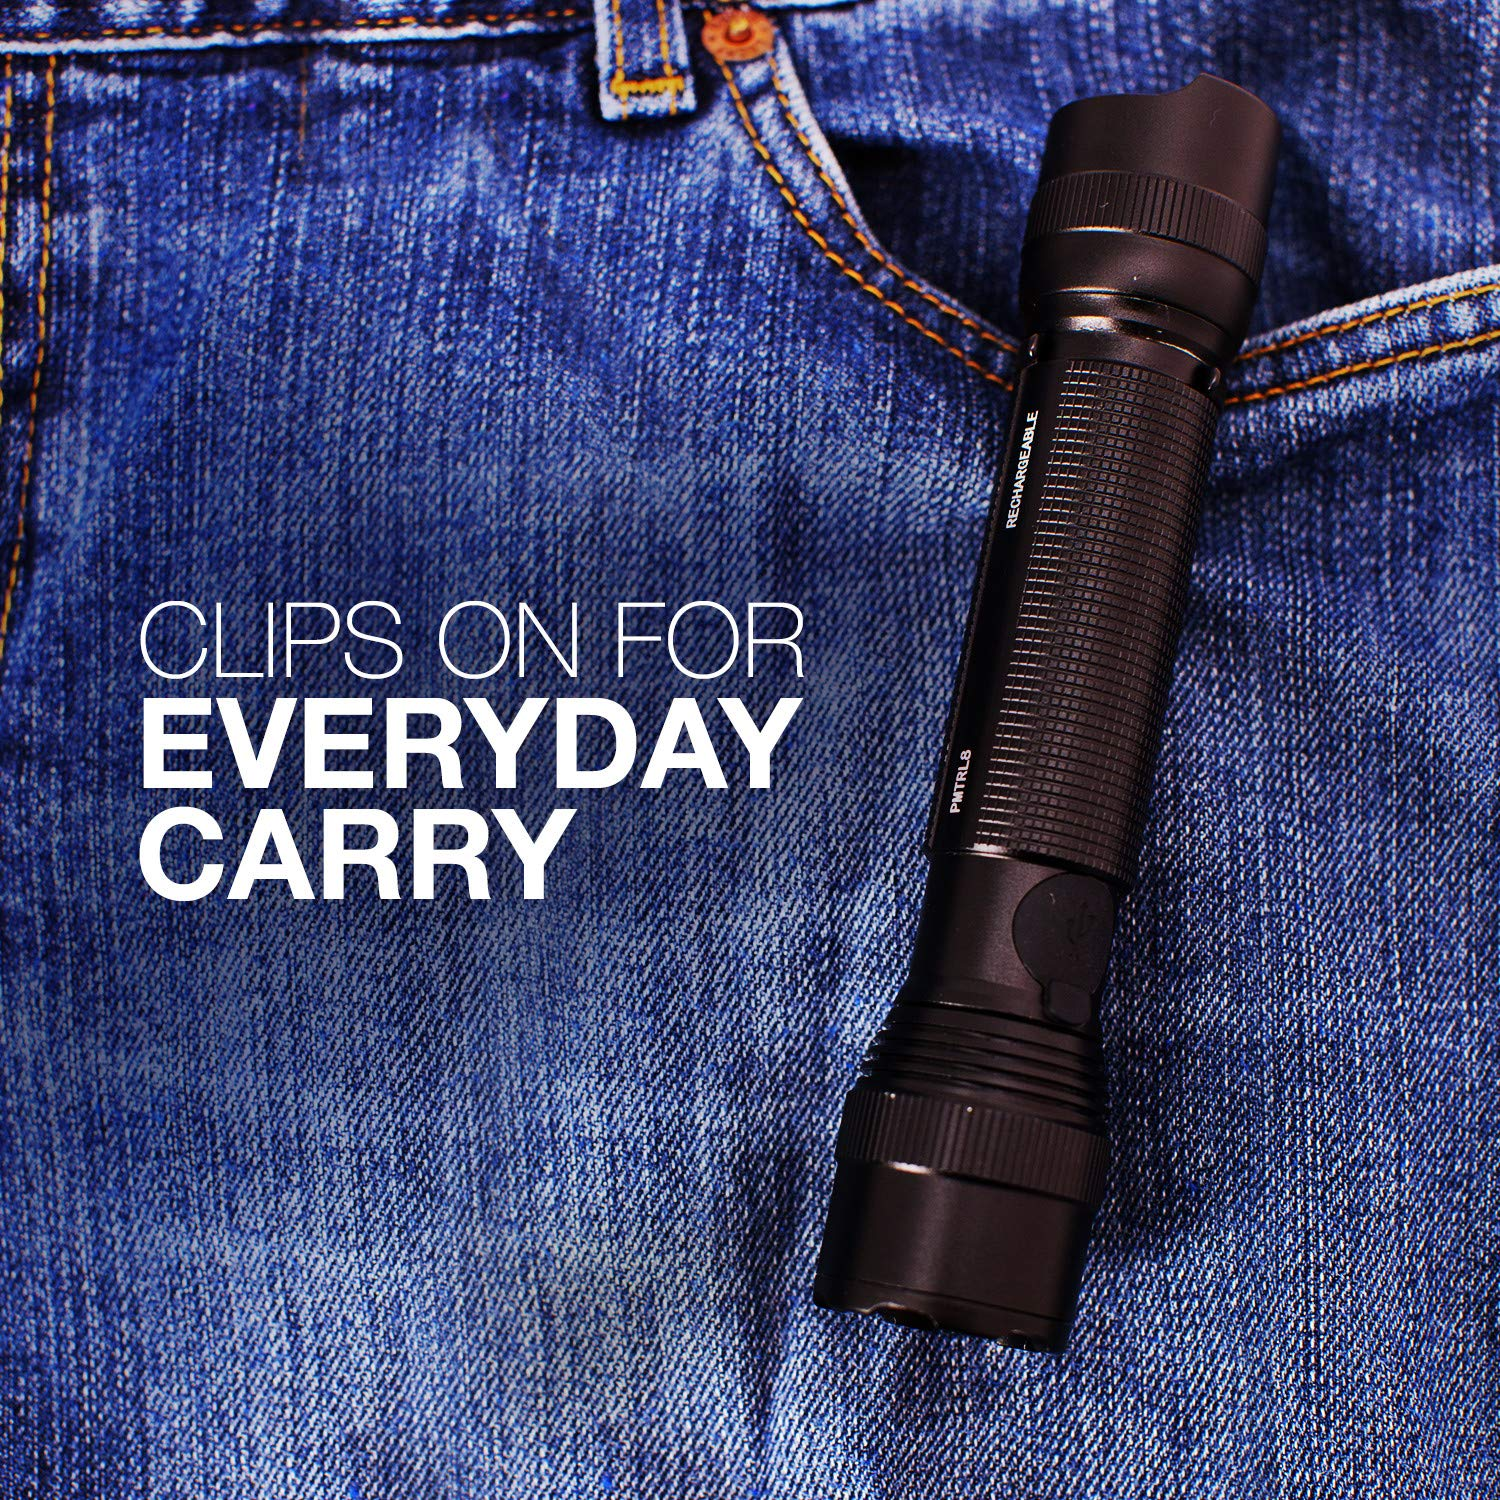 Energizer Tac-r 700 Rechargeable Tactical Flashlight, 700 Lumens 3 Modes by Energizer (Image #5)